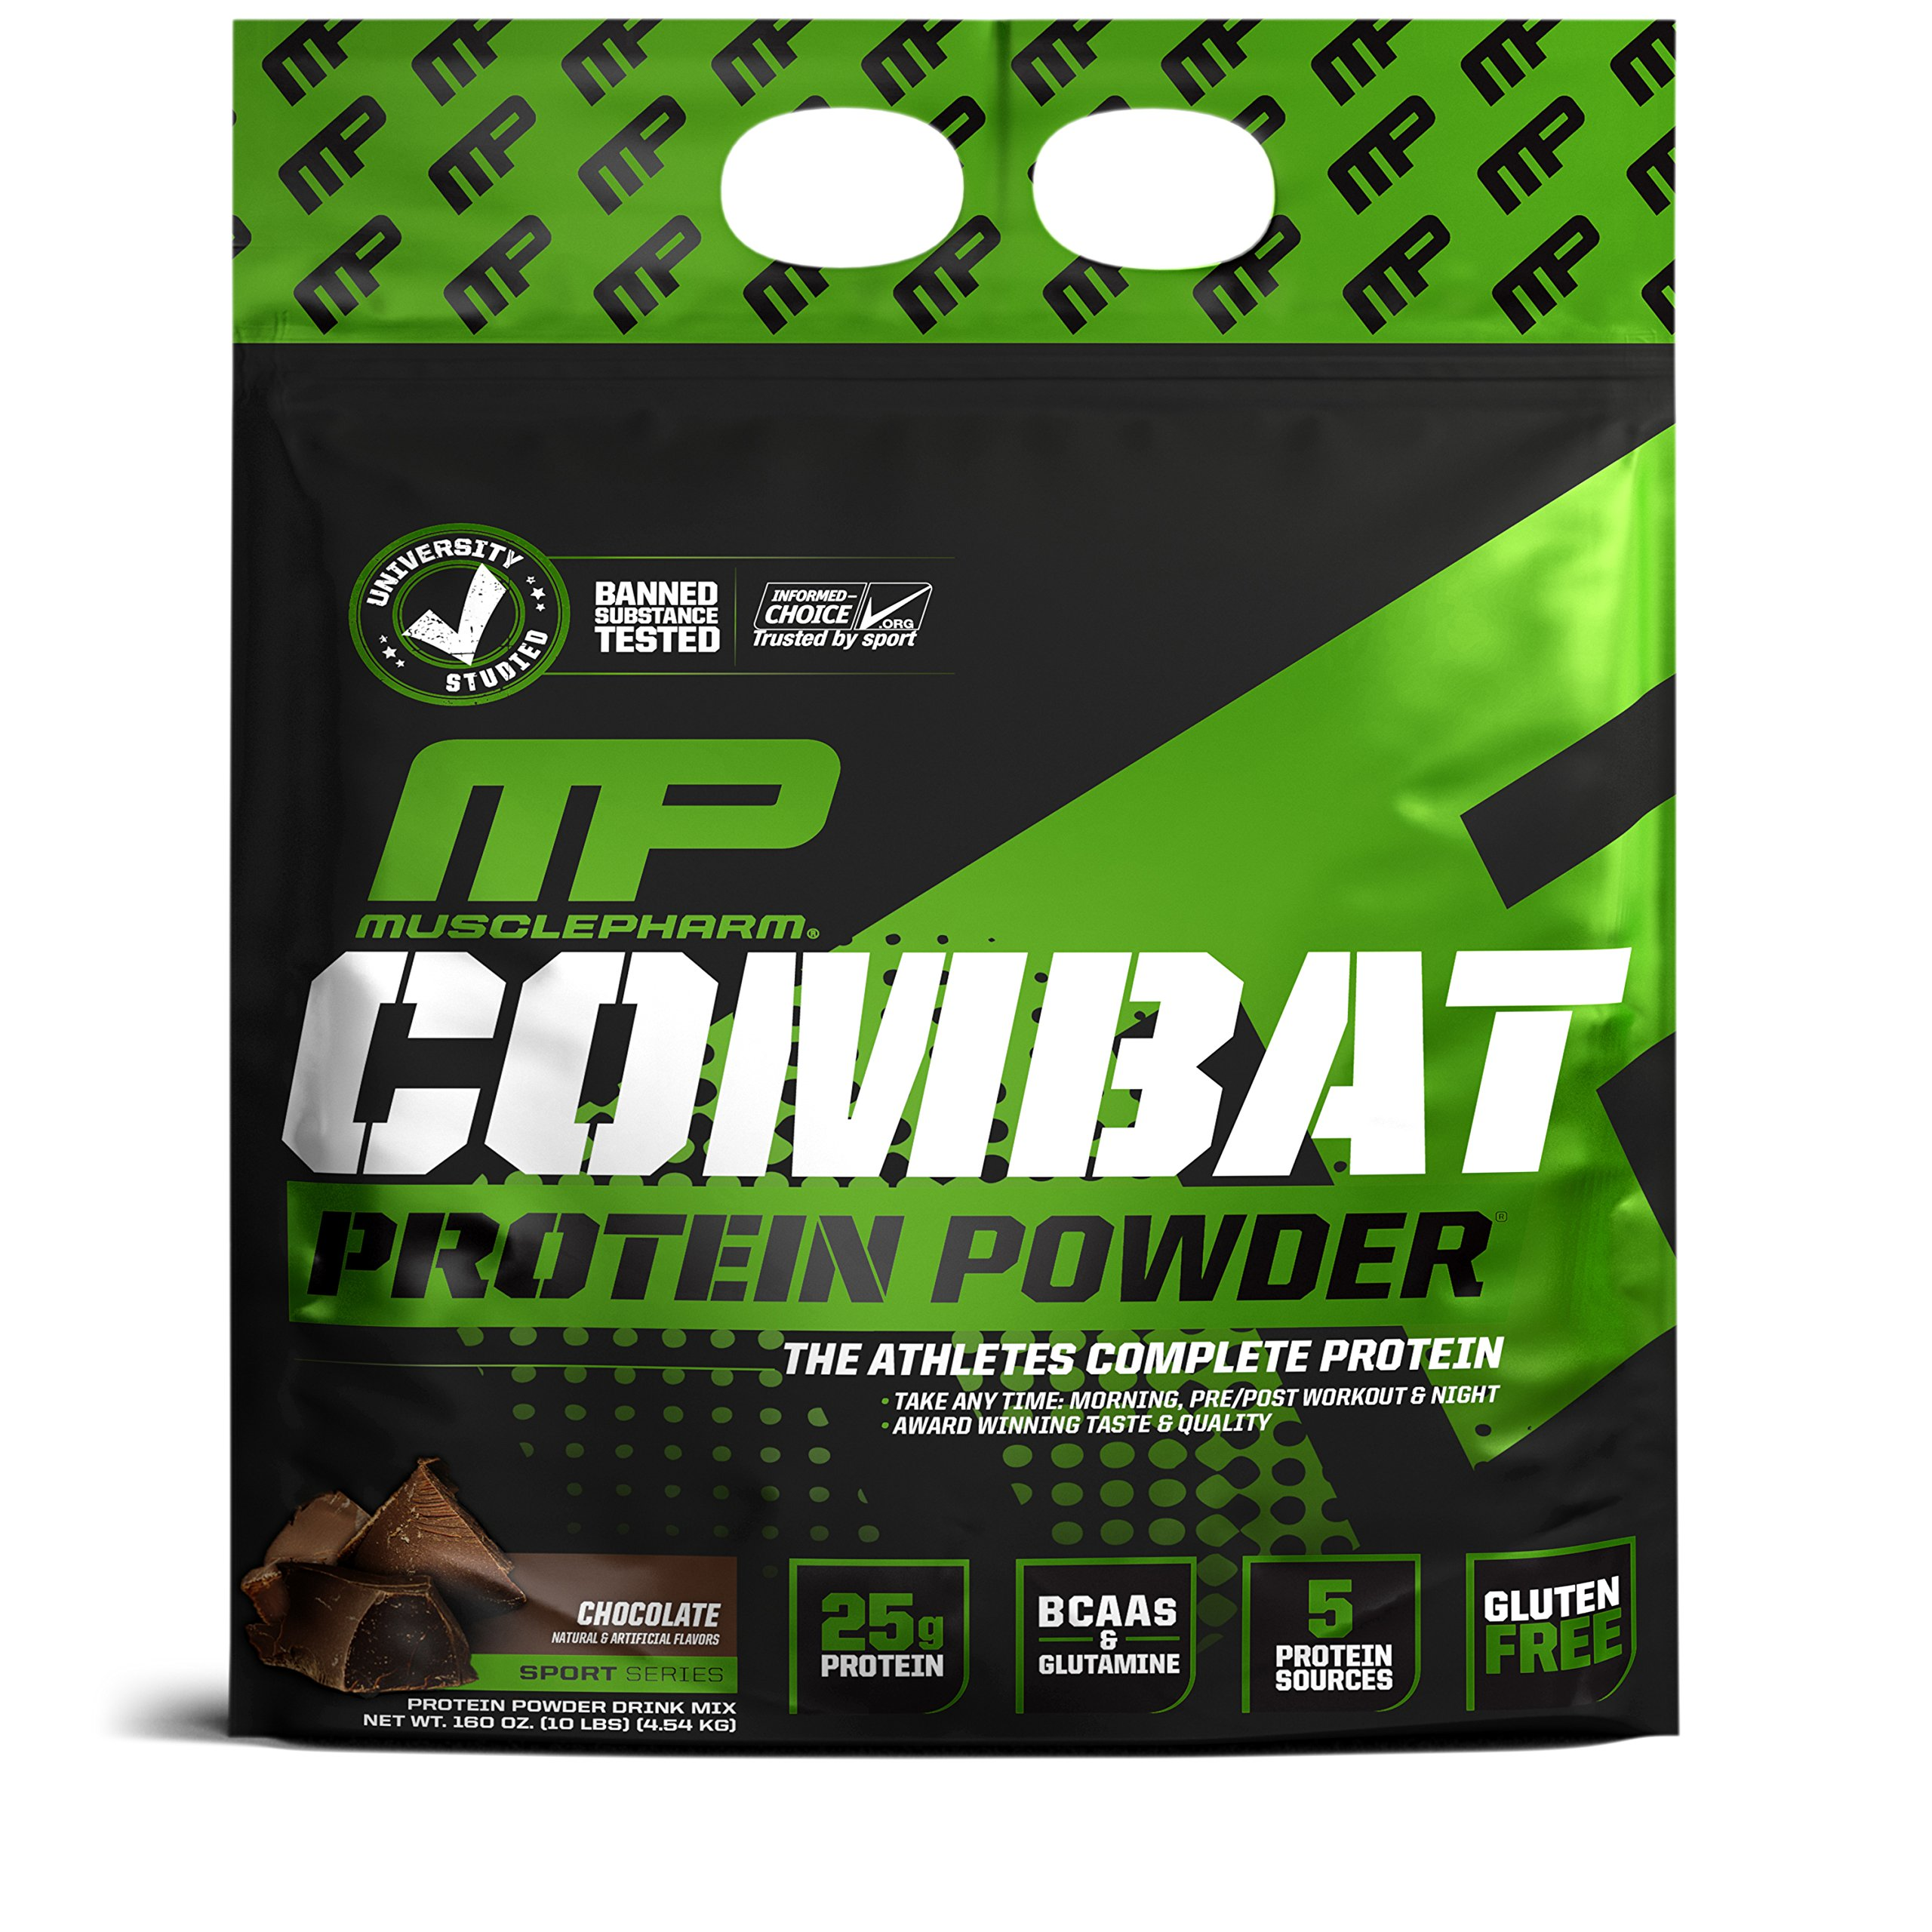 MusclePharm Combat Protein Powder, Essential Whey Protein Powder, Isolate Whey Protein, Casein and Egg Protein with BCAAs and Glutamine for Recovery, Chocolate Milk, 10-Pound, 129 Servings by Muscle Pharm